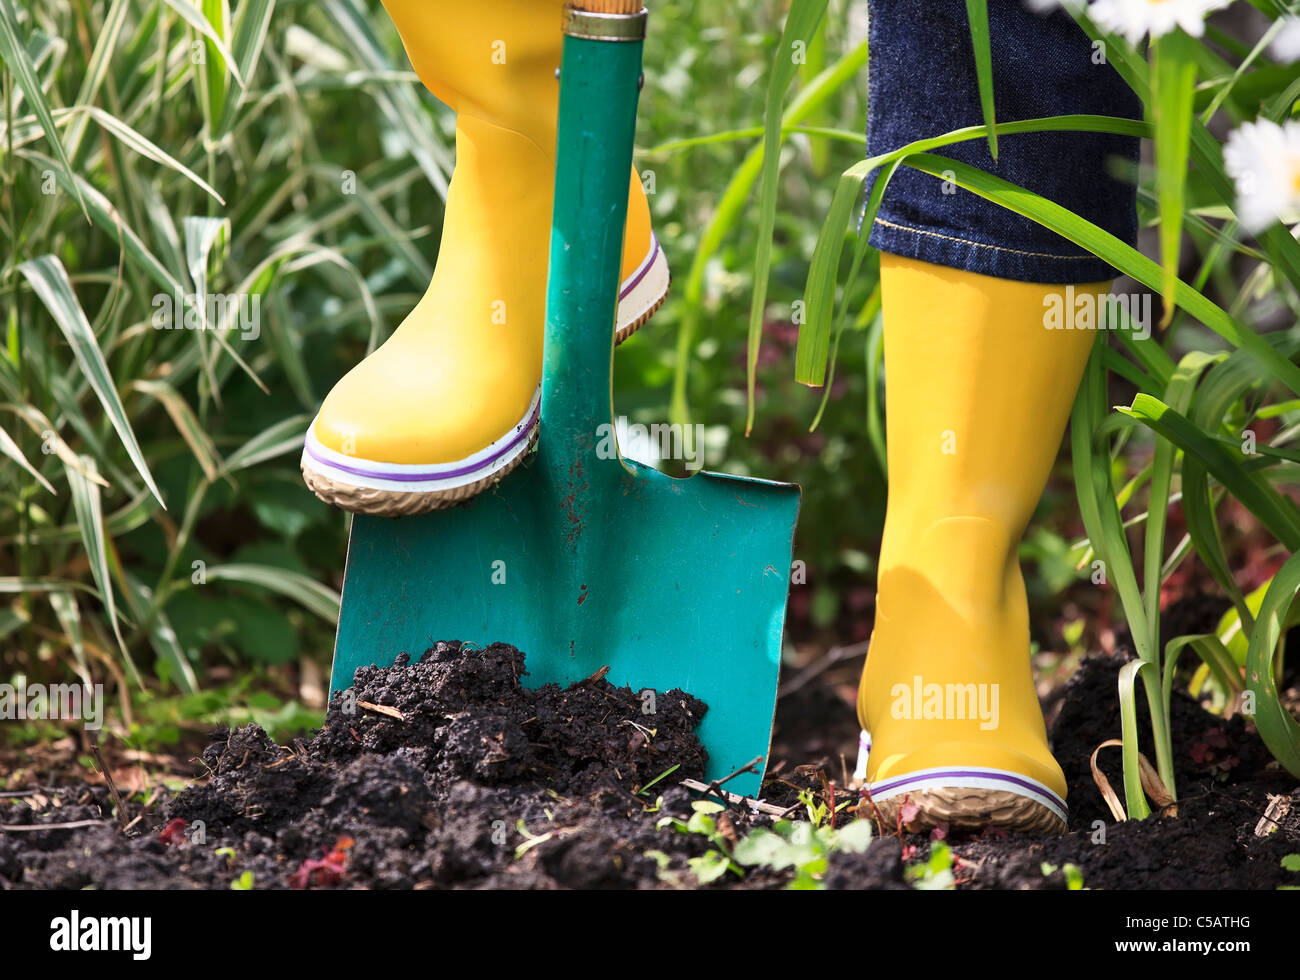 Gardener digging in soil with a spade, wearing yellow rubber boots, close up view. - Stock Image